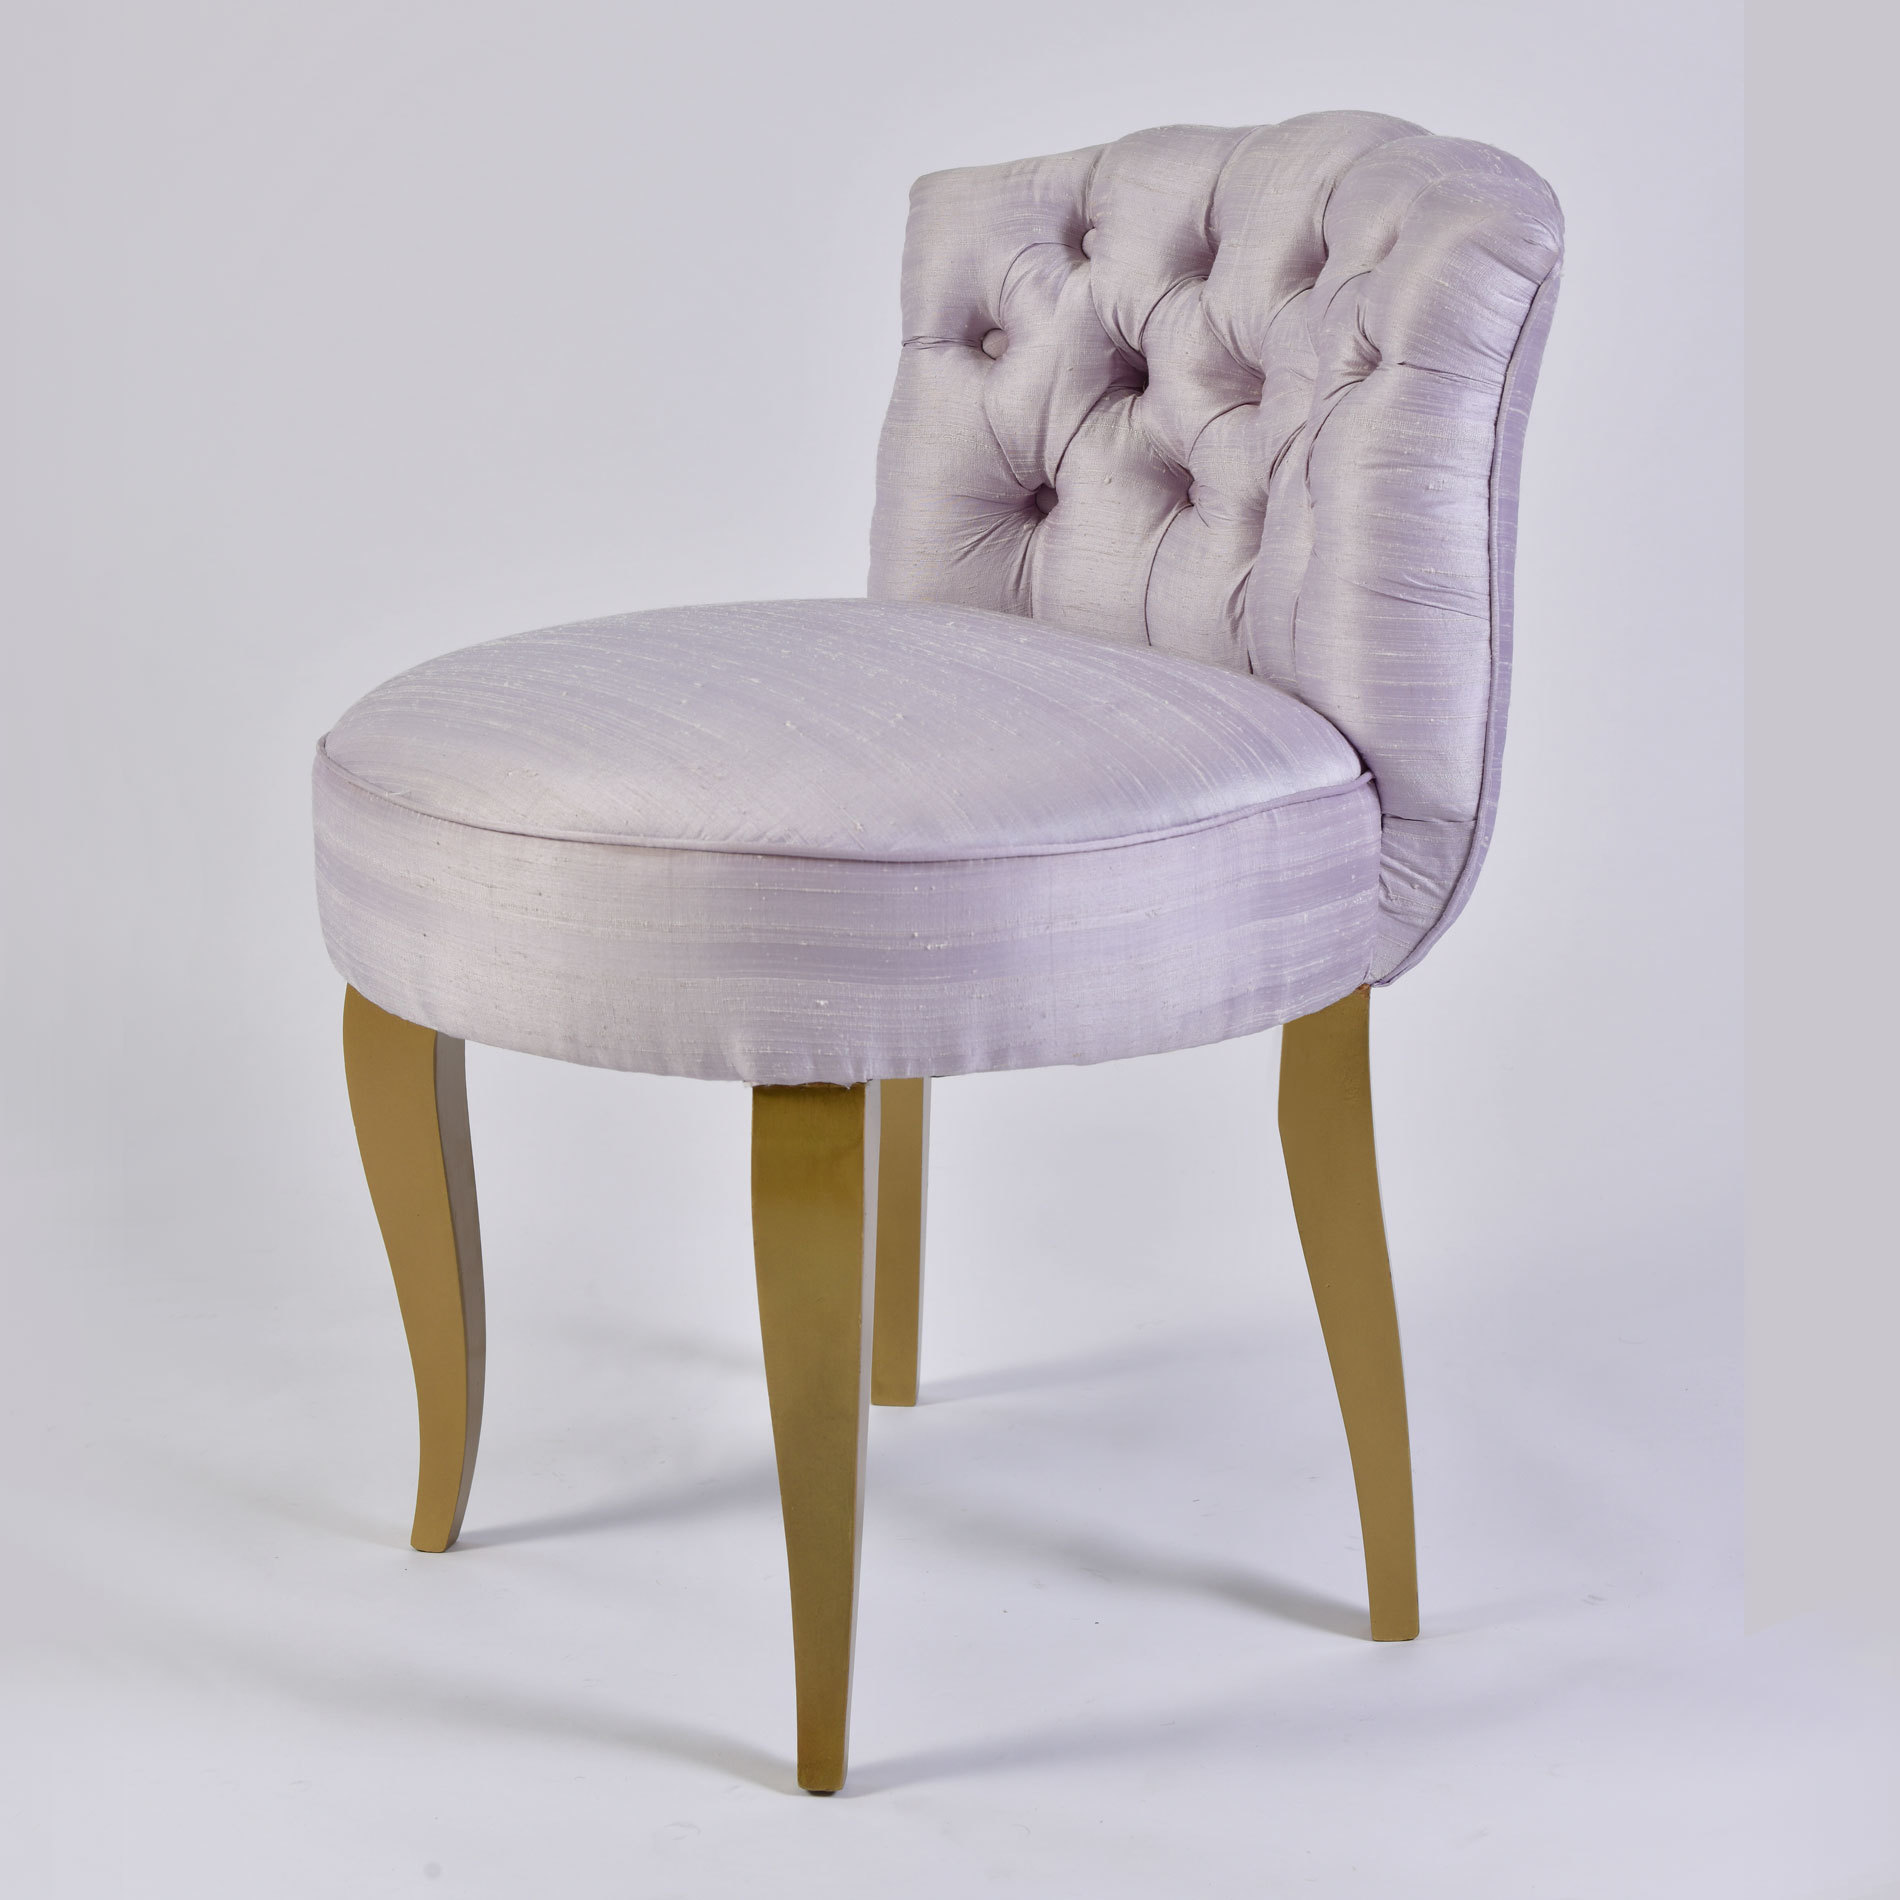 The image for Vintage Upholstered Seat 01